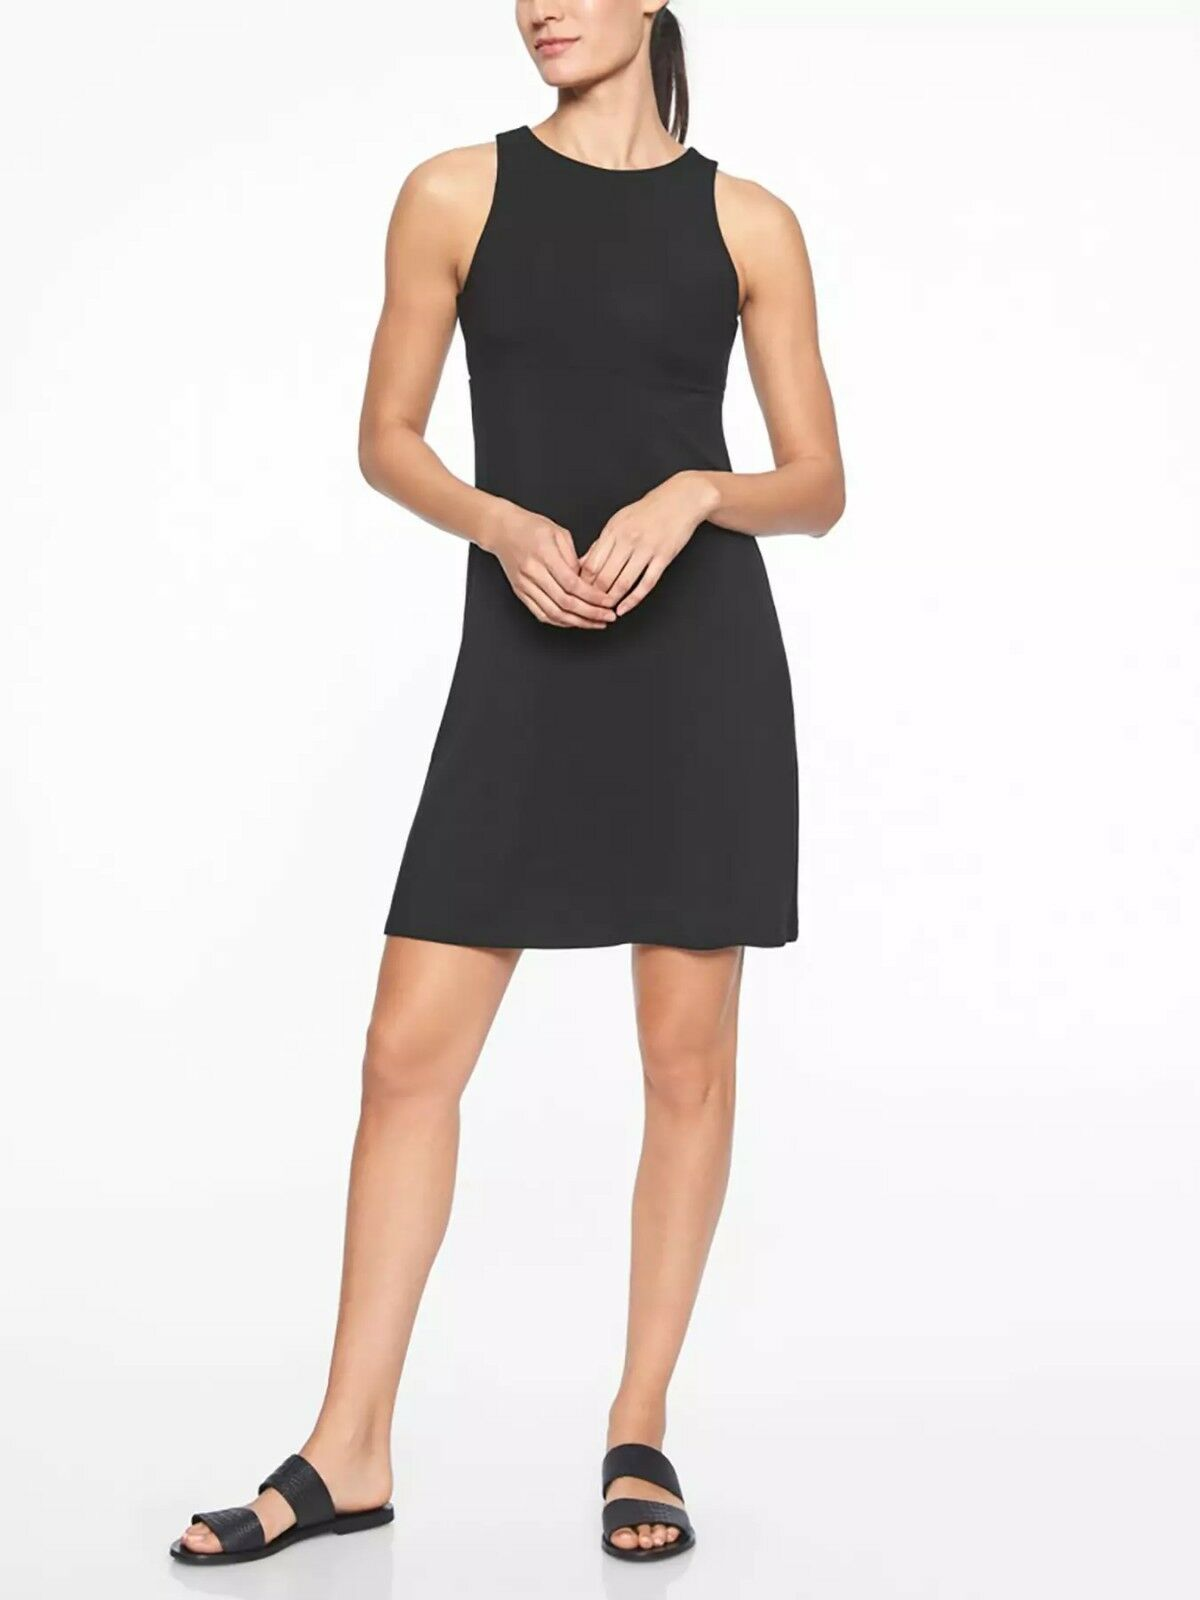 NWT Athleta Santorini High Neck Solid Dress, schwarz Größe XLT XL T N0415